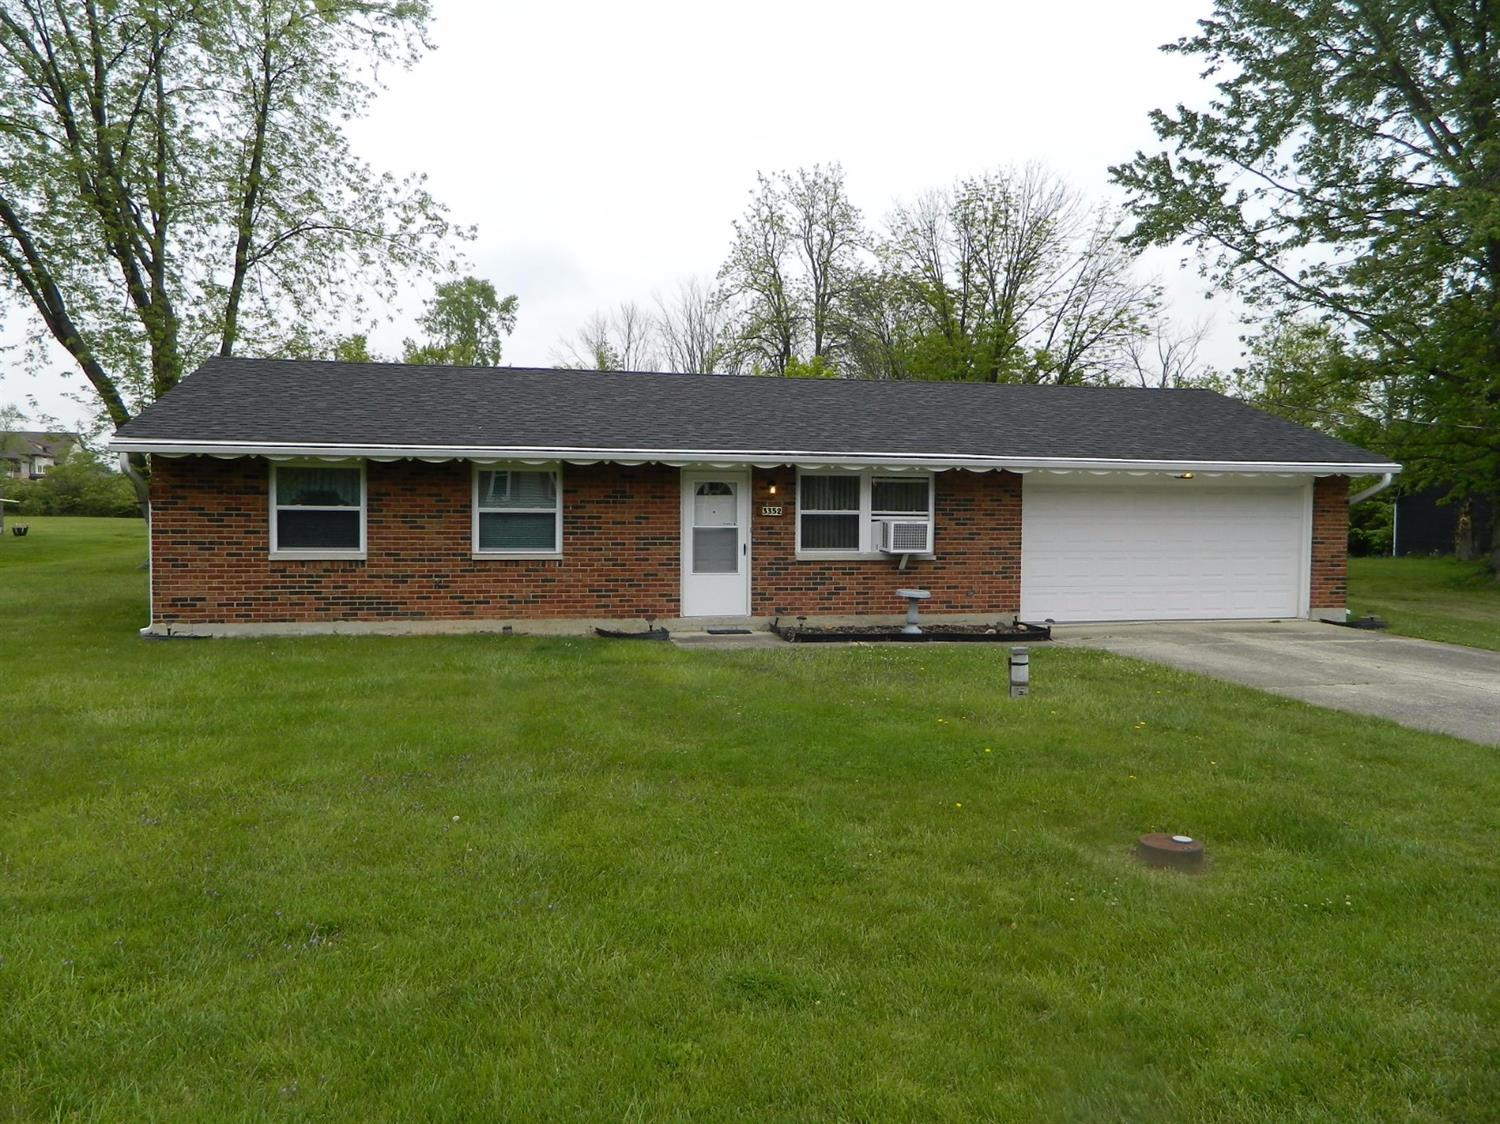 3352 Home Acres Ave Greene Co., OH 45431